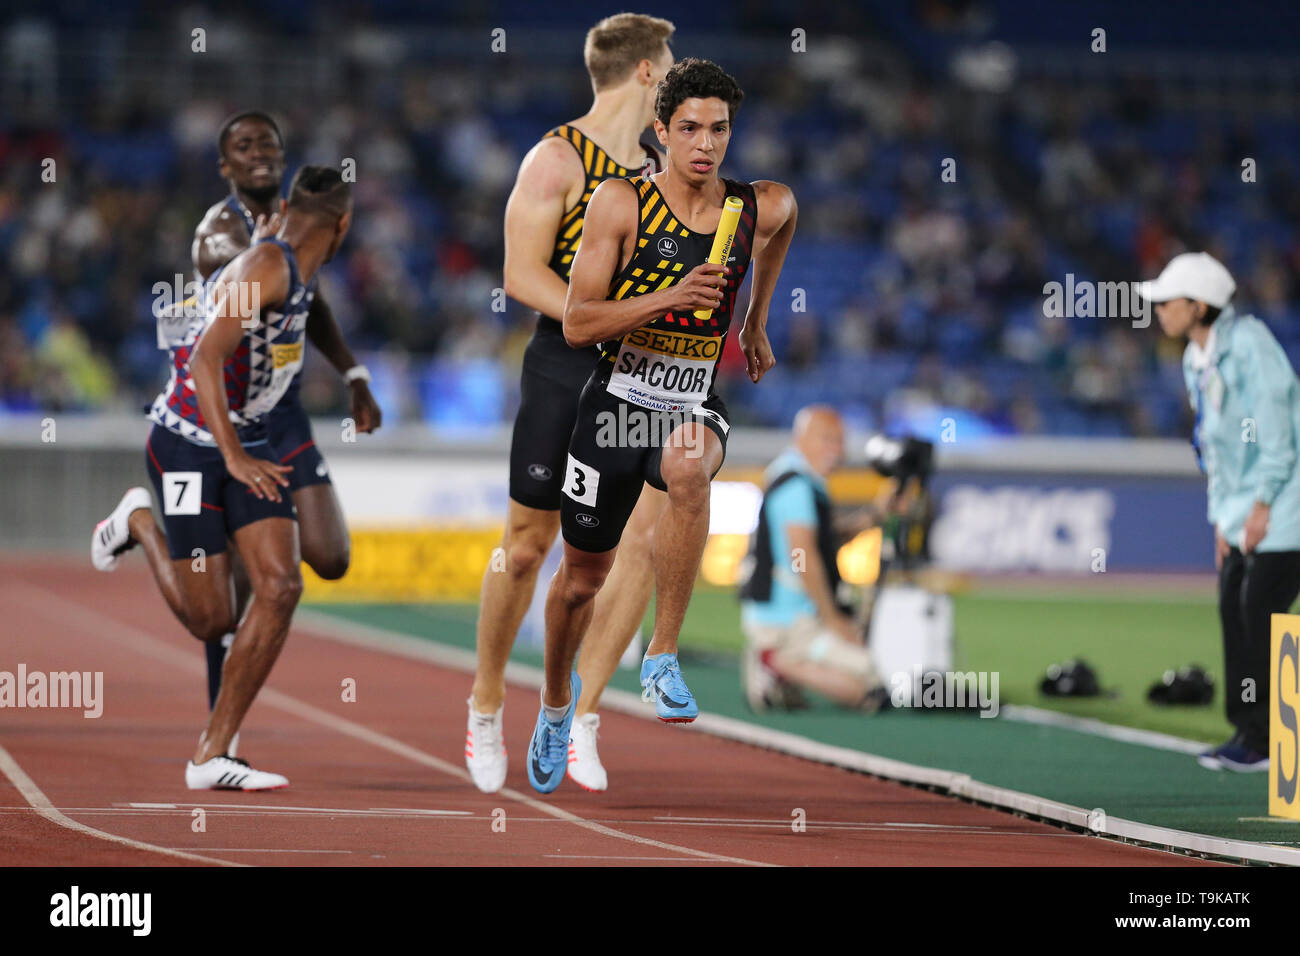 YOKOHAMA, JAPAN - MAY 10: Jonathan Sacoor of Belgium during Day 1 of the 2019 IAAF World Relay Championships at the Nissan Stadium on Saturday May 11, 2019 in Yokohama, Japan. (Photo by Roger Sedres for the IAAF) - Stock Image